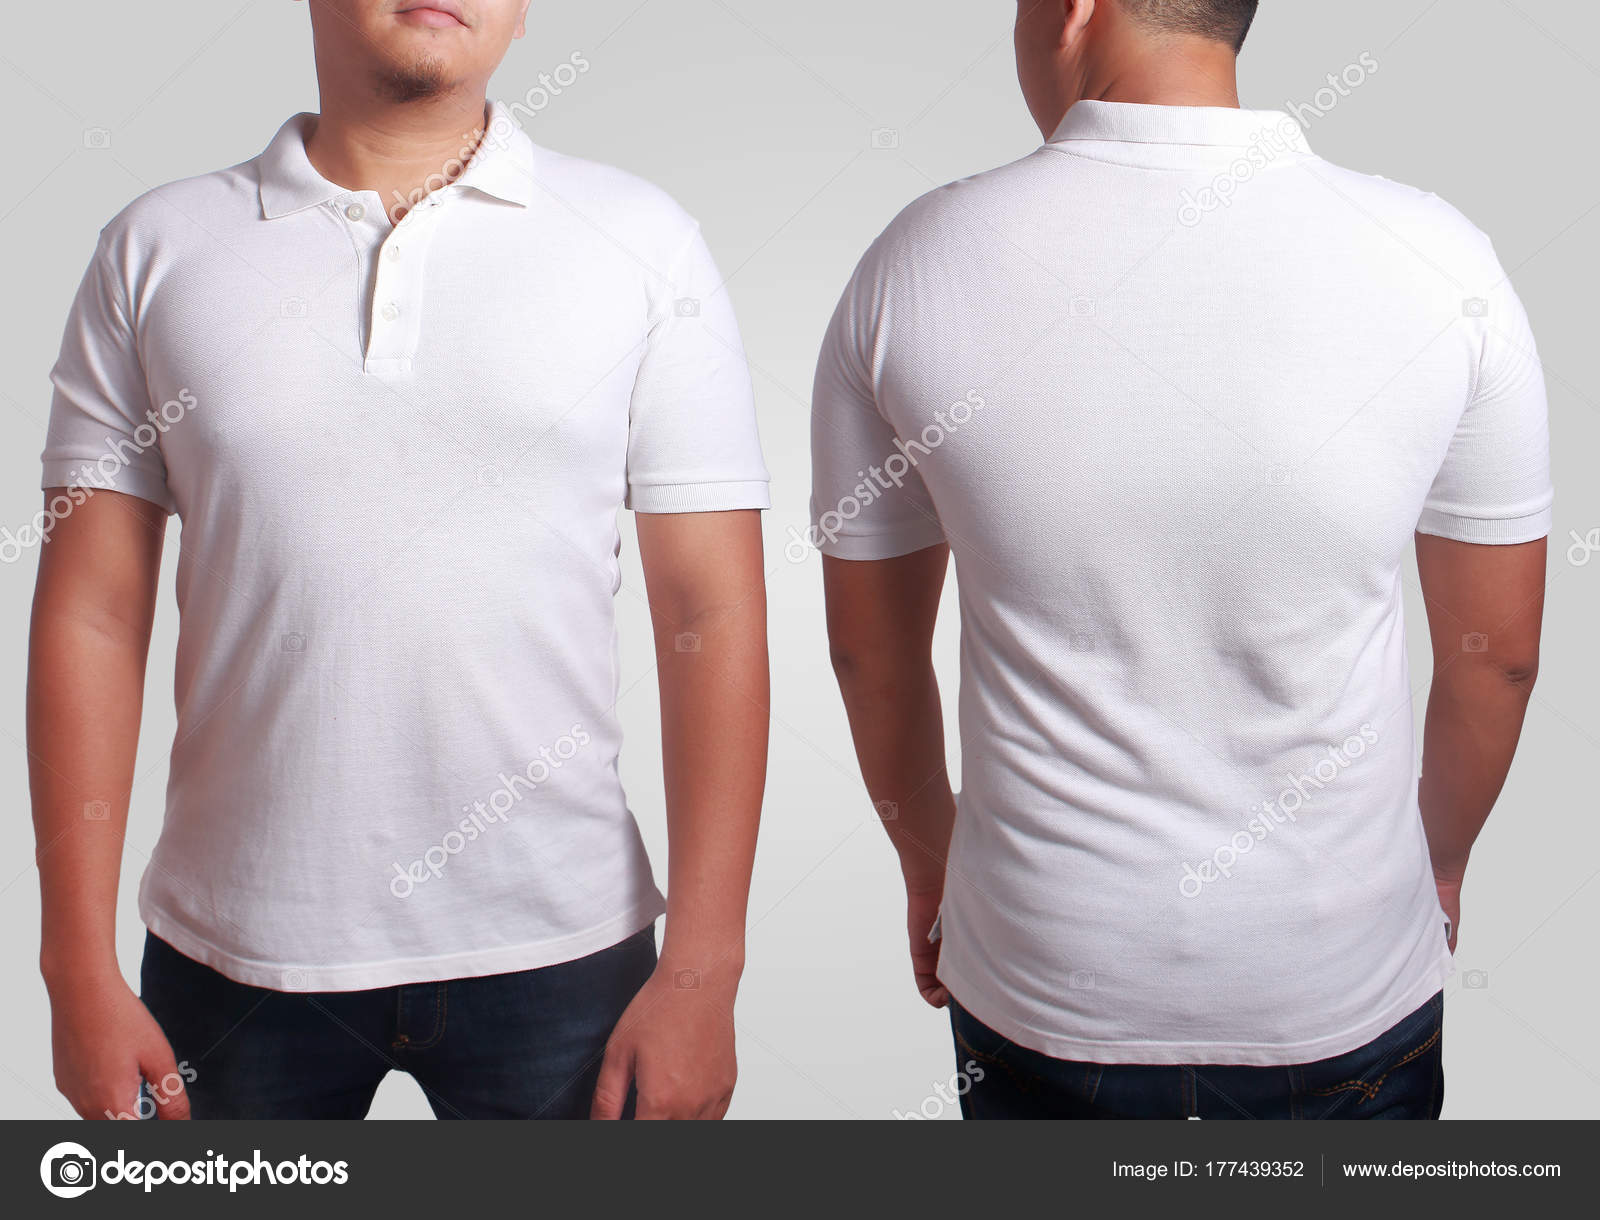 bfbd8748f Blank polo shirt mock up, front, and back view, isolated on grey. Asian  male model wear plain white tshirt mockup. Clothes uniform design  presentation for ...